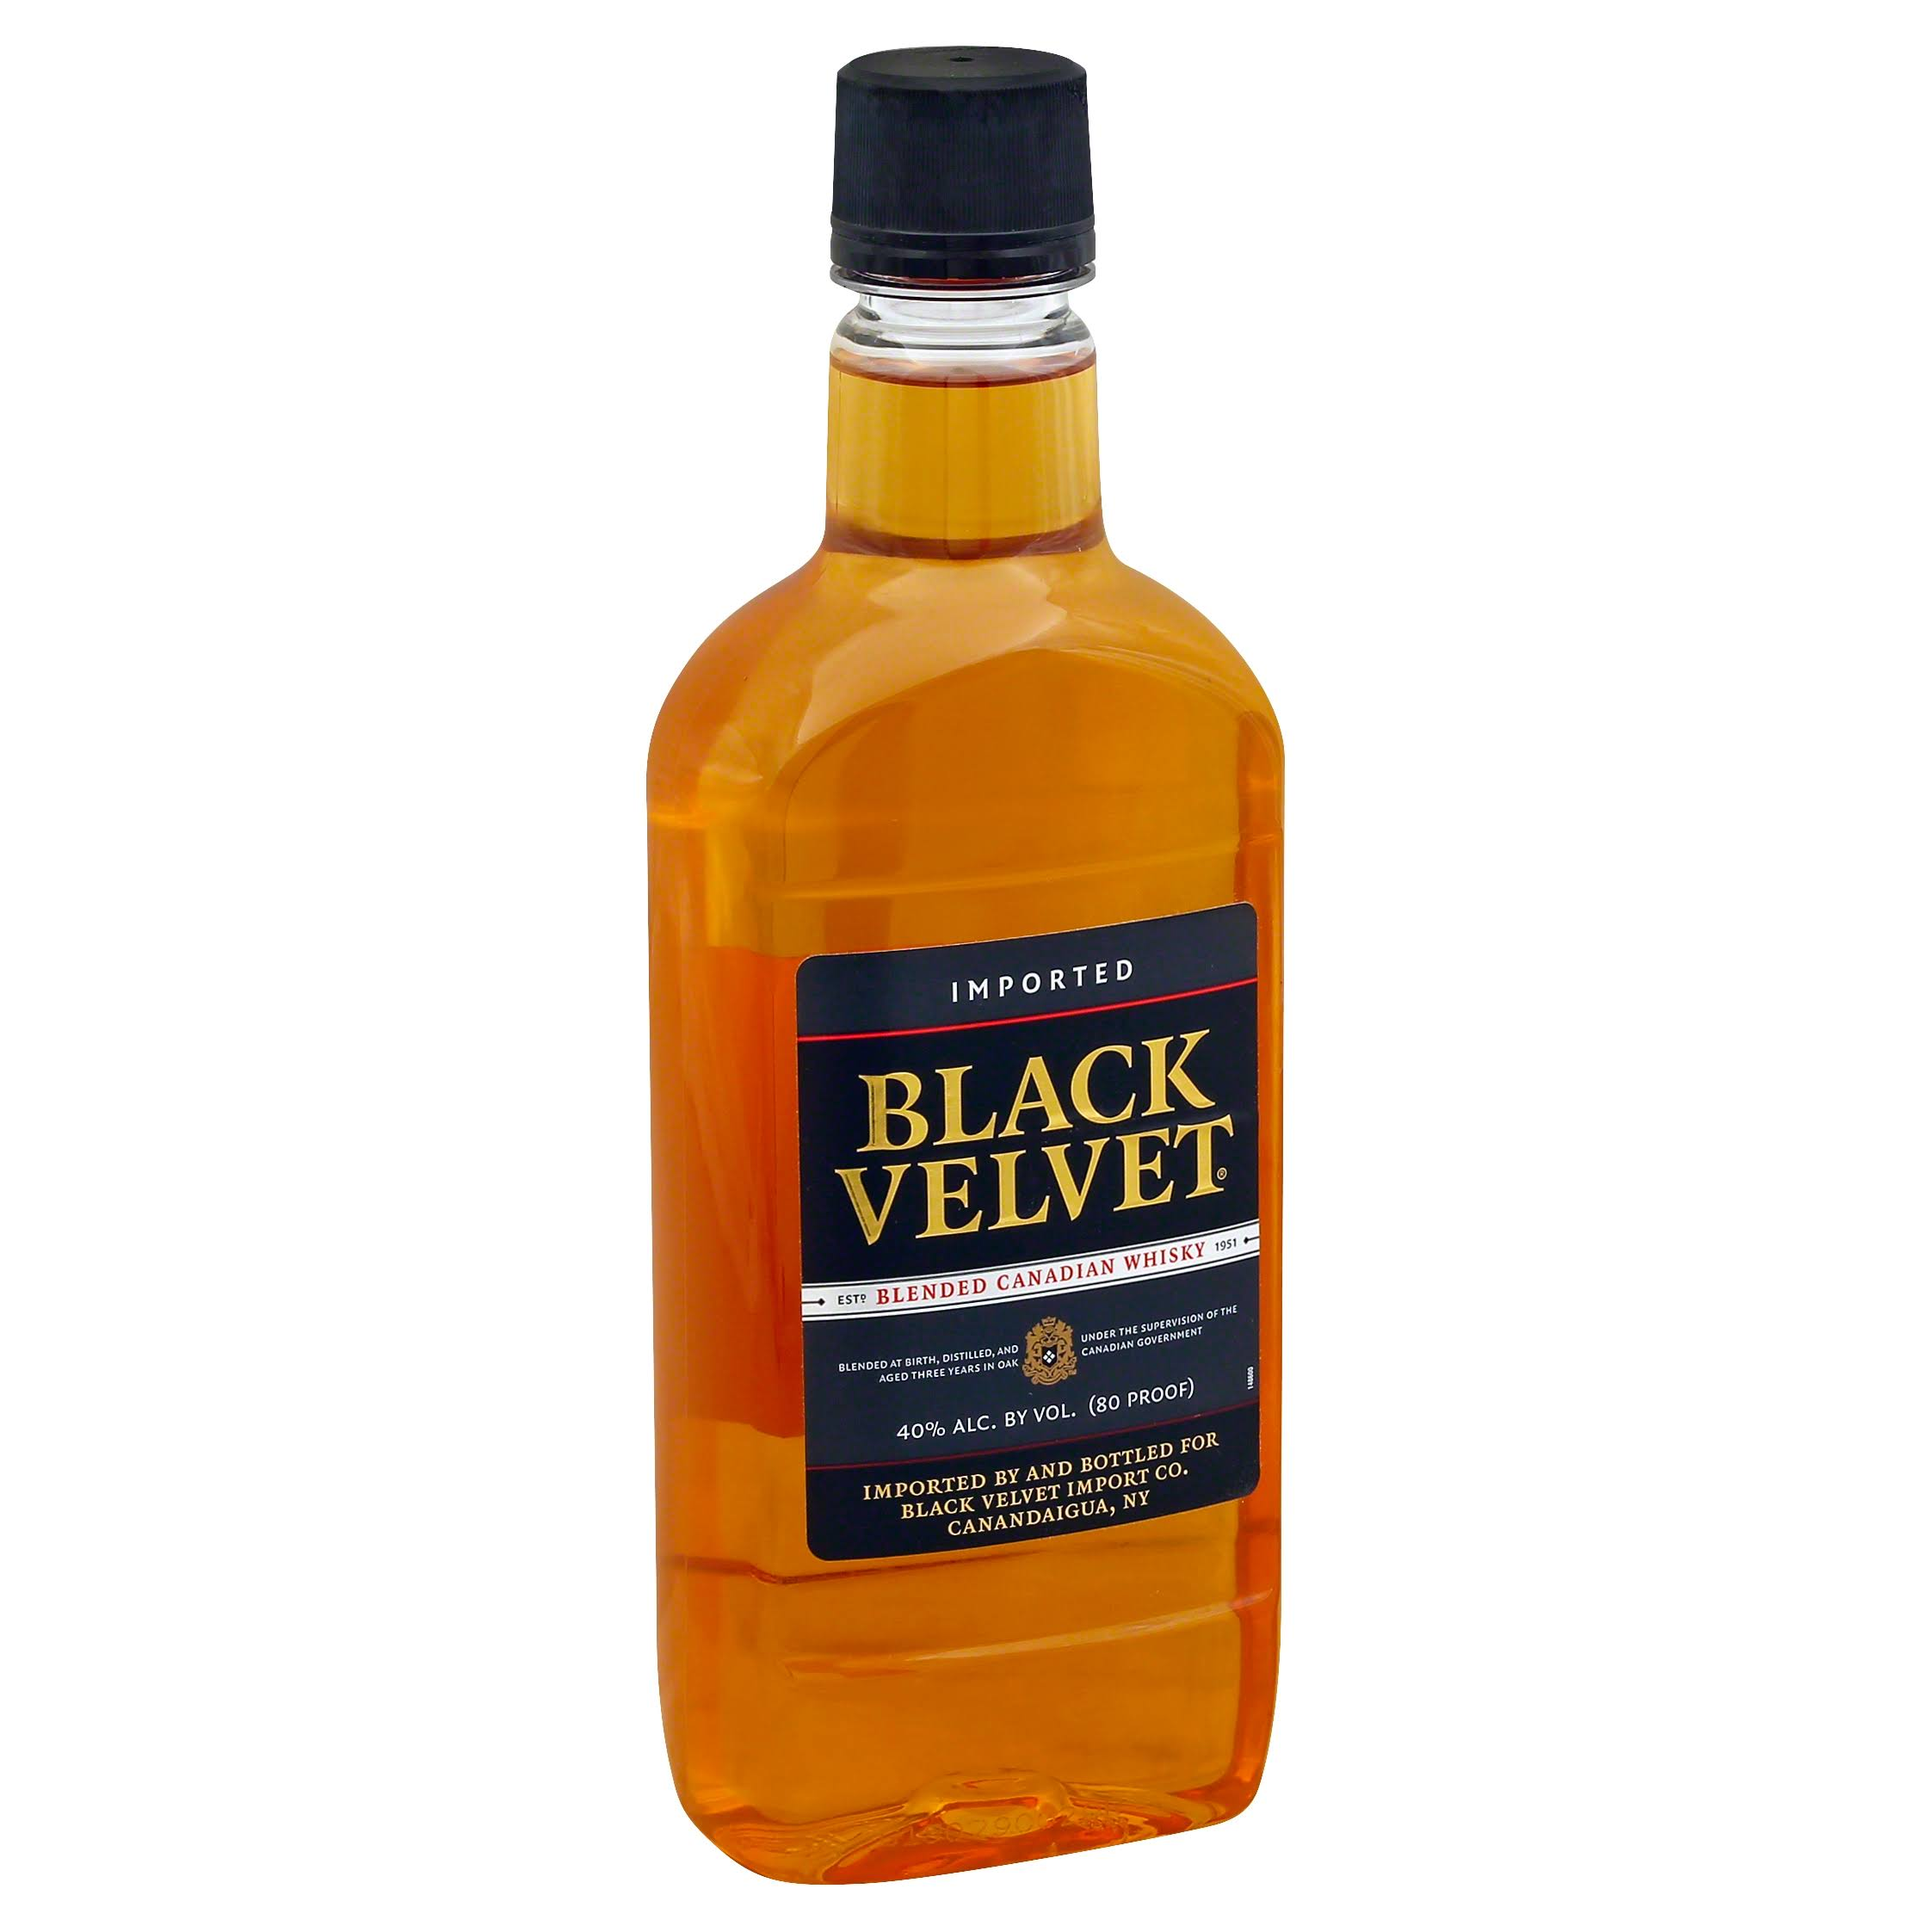 Black Velvet Imported Canadian Whisky